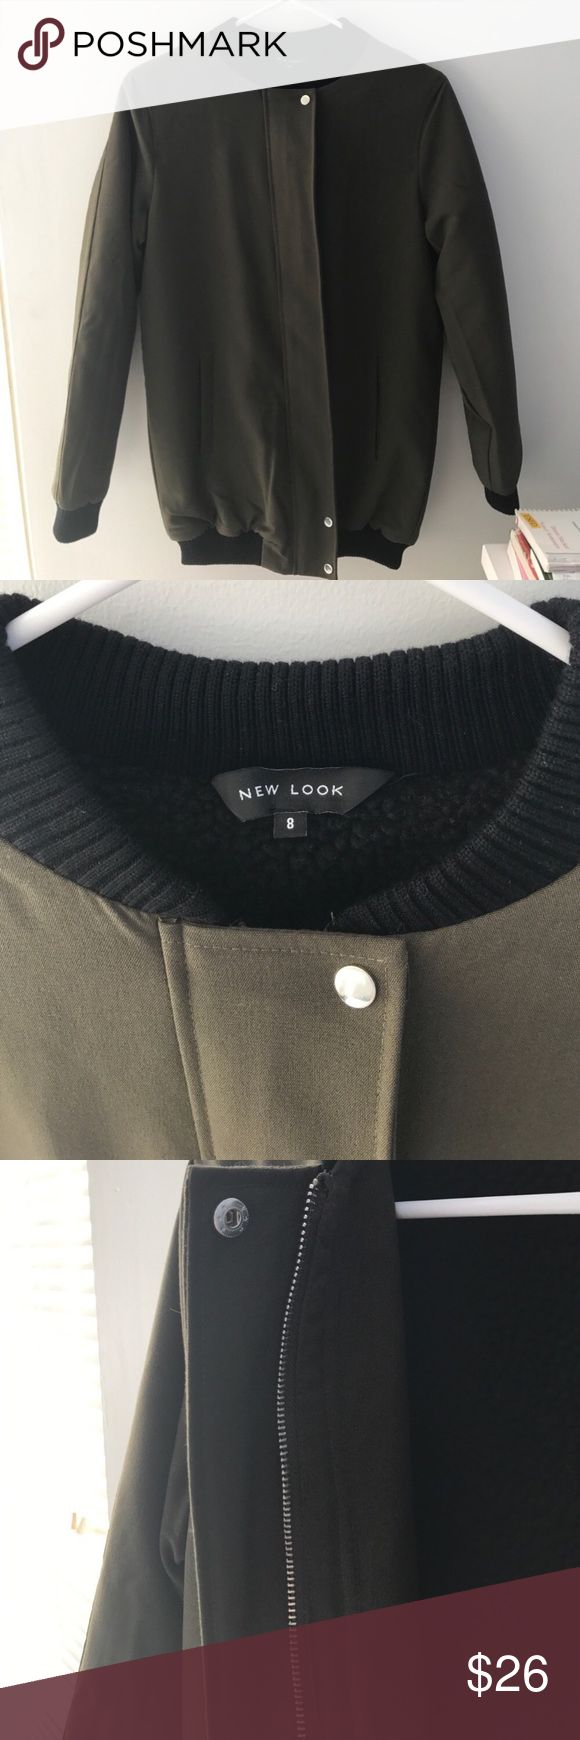 New Look Borg Lined Longline Bomber Soft-touch woven fabric Only worn once Baseball collar Size: US 4  Wool lining  Olive in color ASOS Jackets & Coats